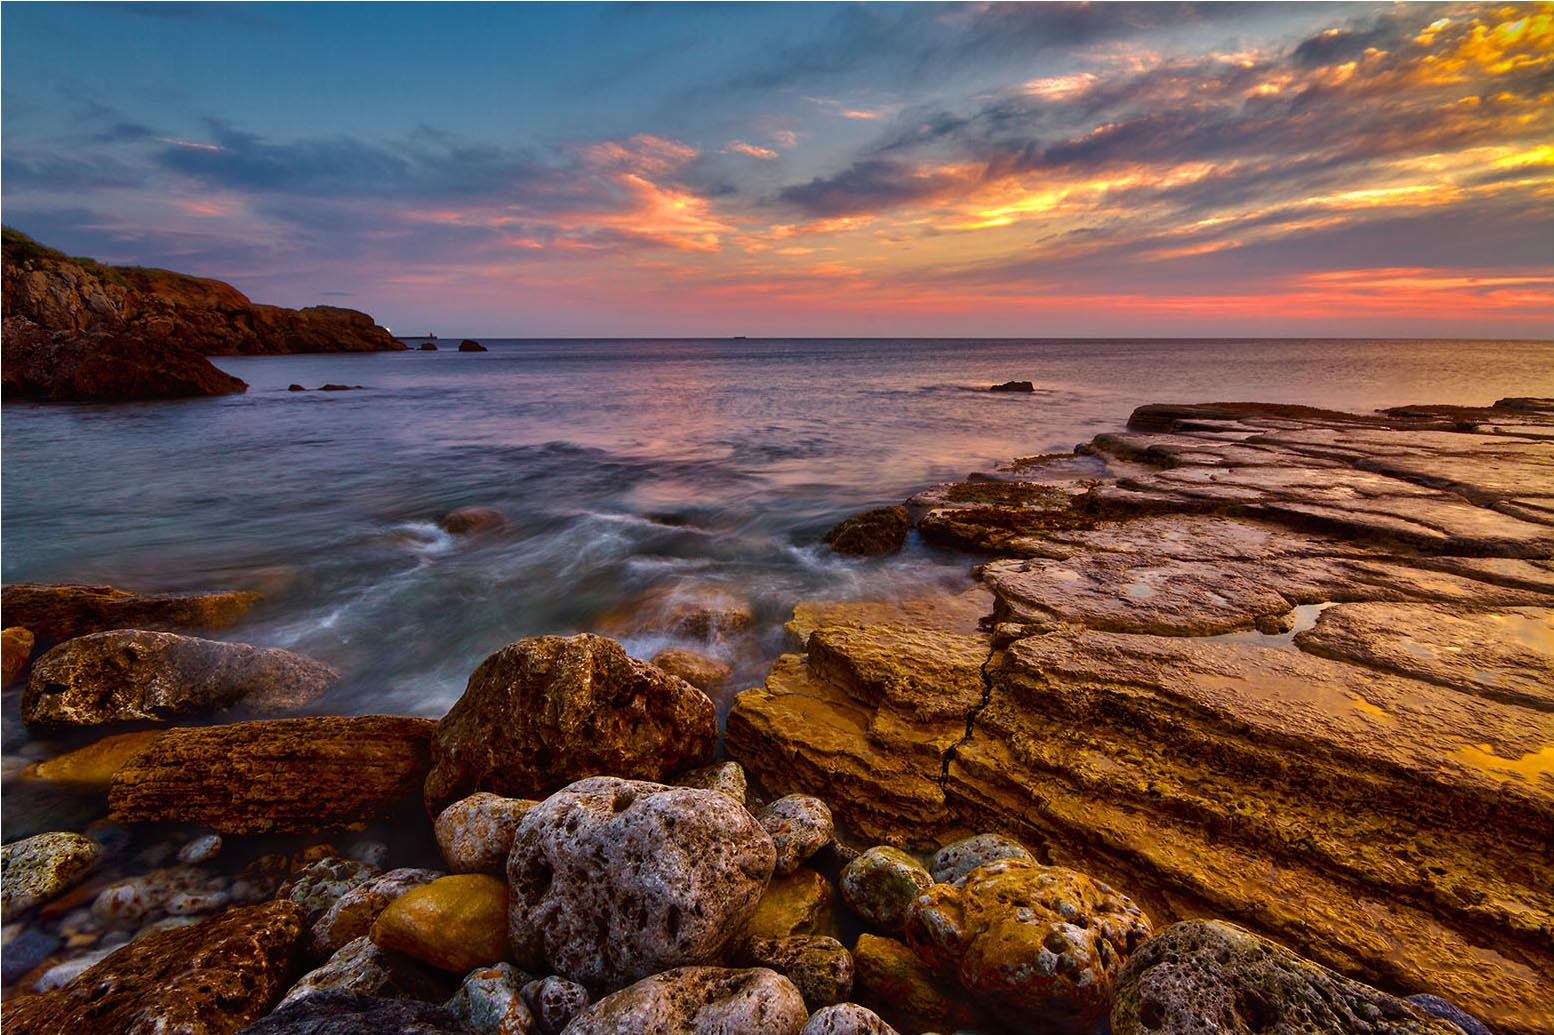 Photograph Trow Point Looking North by Peter Fenech on 500px